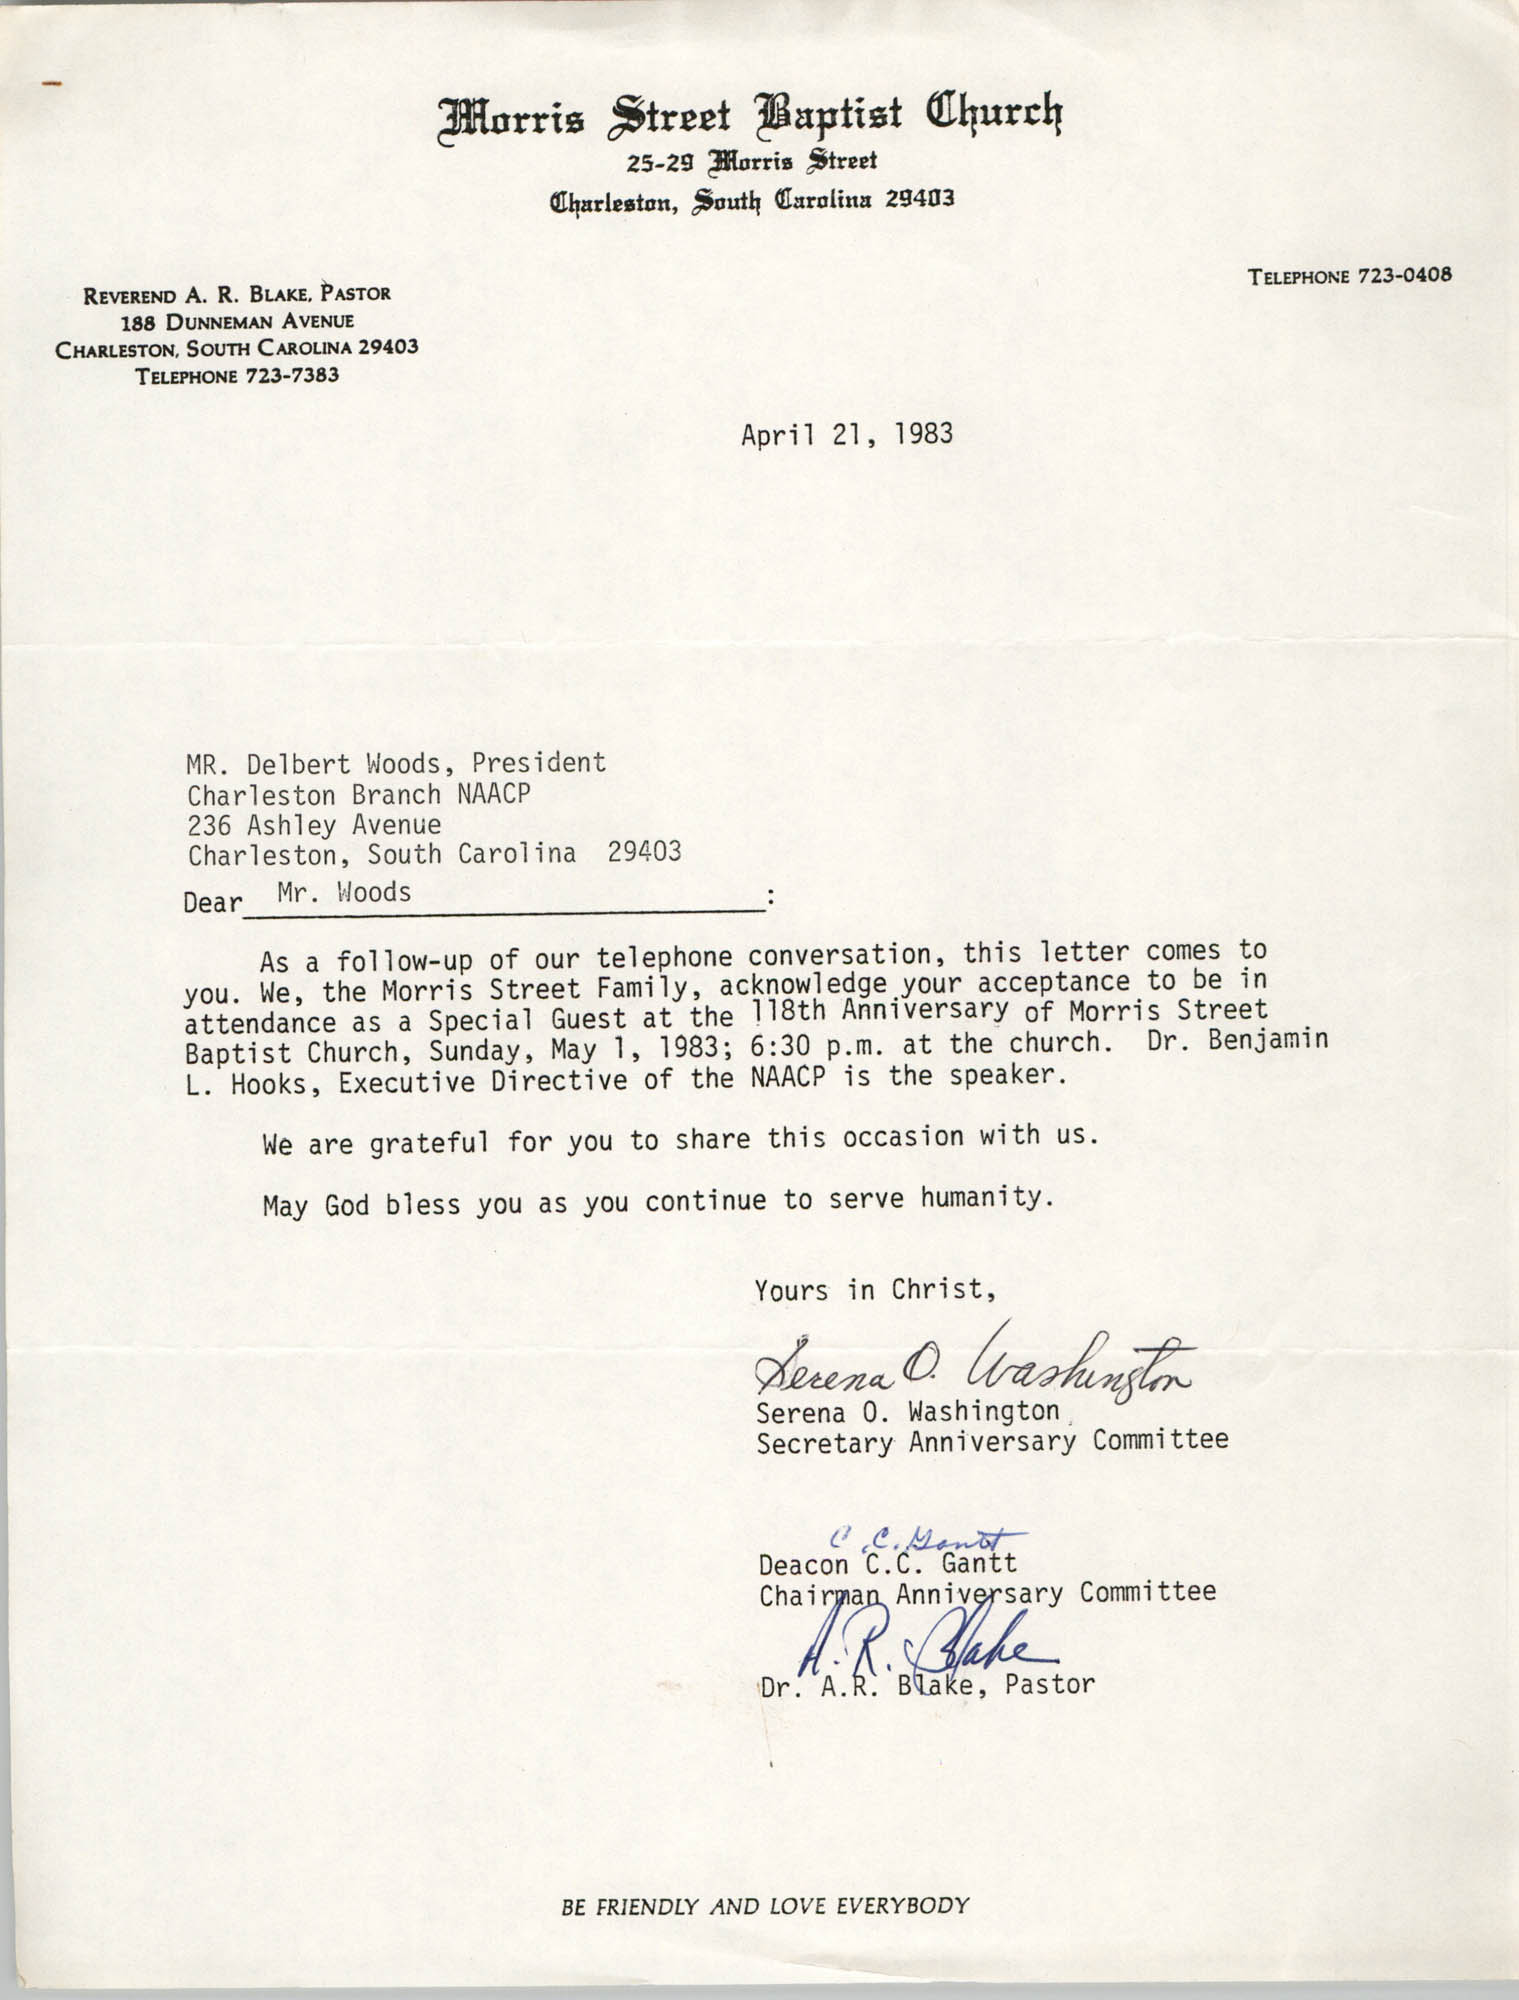 Letter from Serena O. Washington, Deacon C.C. Gantt, and A.R. Blake, April 21, 1983